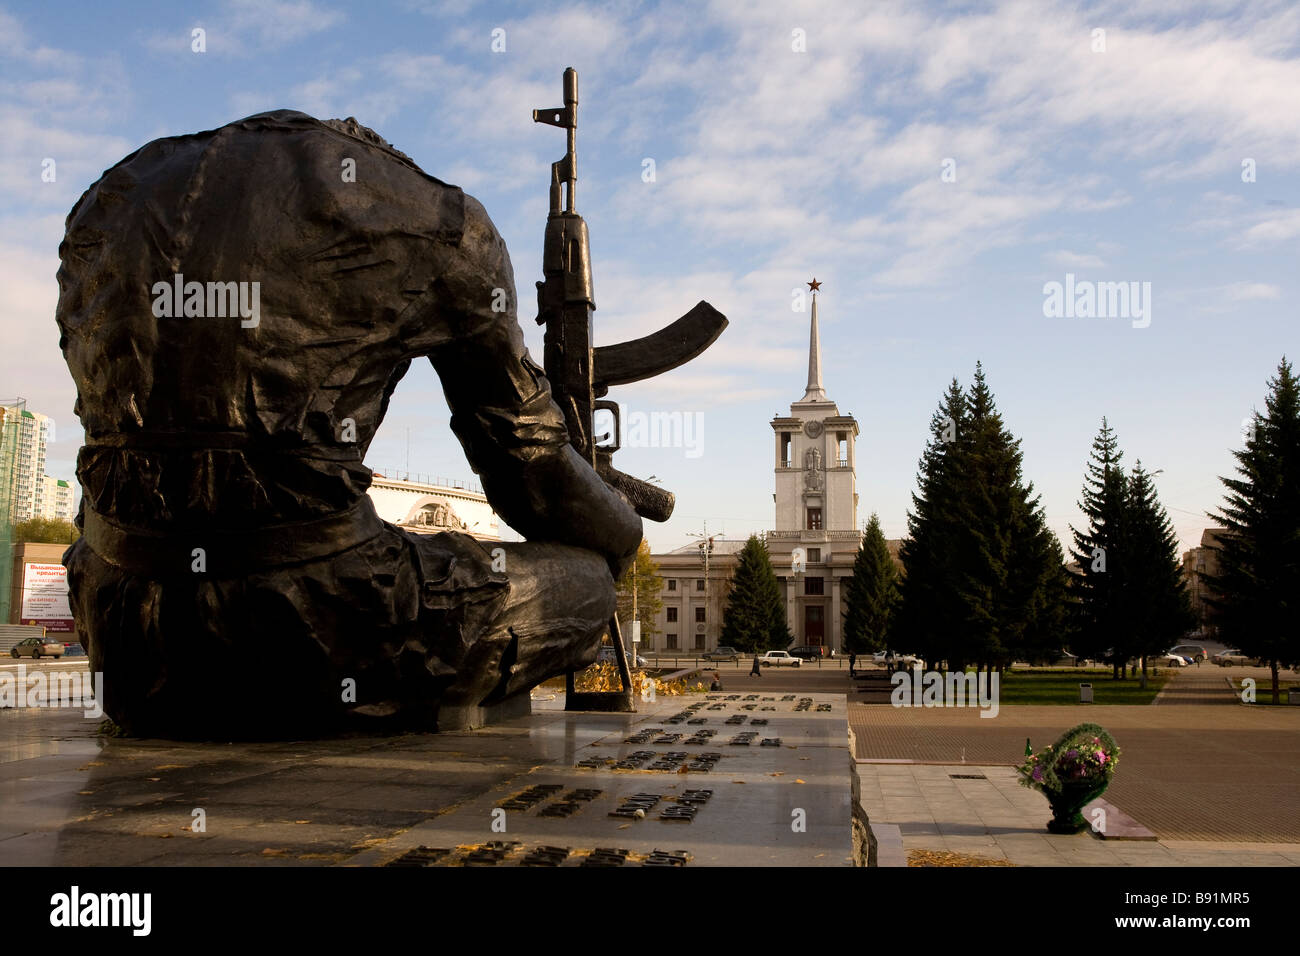 Ekaterinburg, Yakaterinburg Russia chechnya War memorial with the old KGB Headquarters in teh background - Stock Image